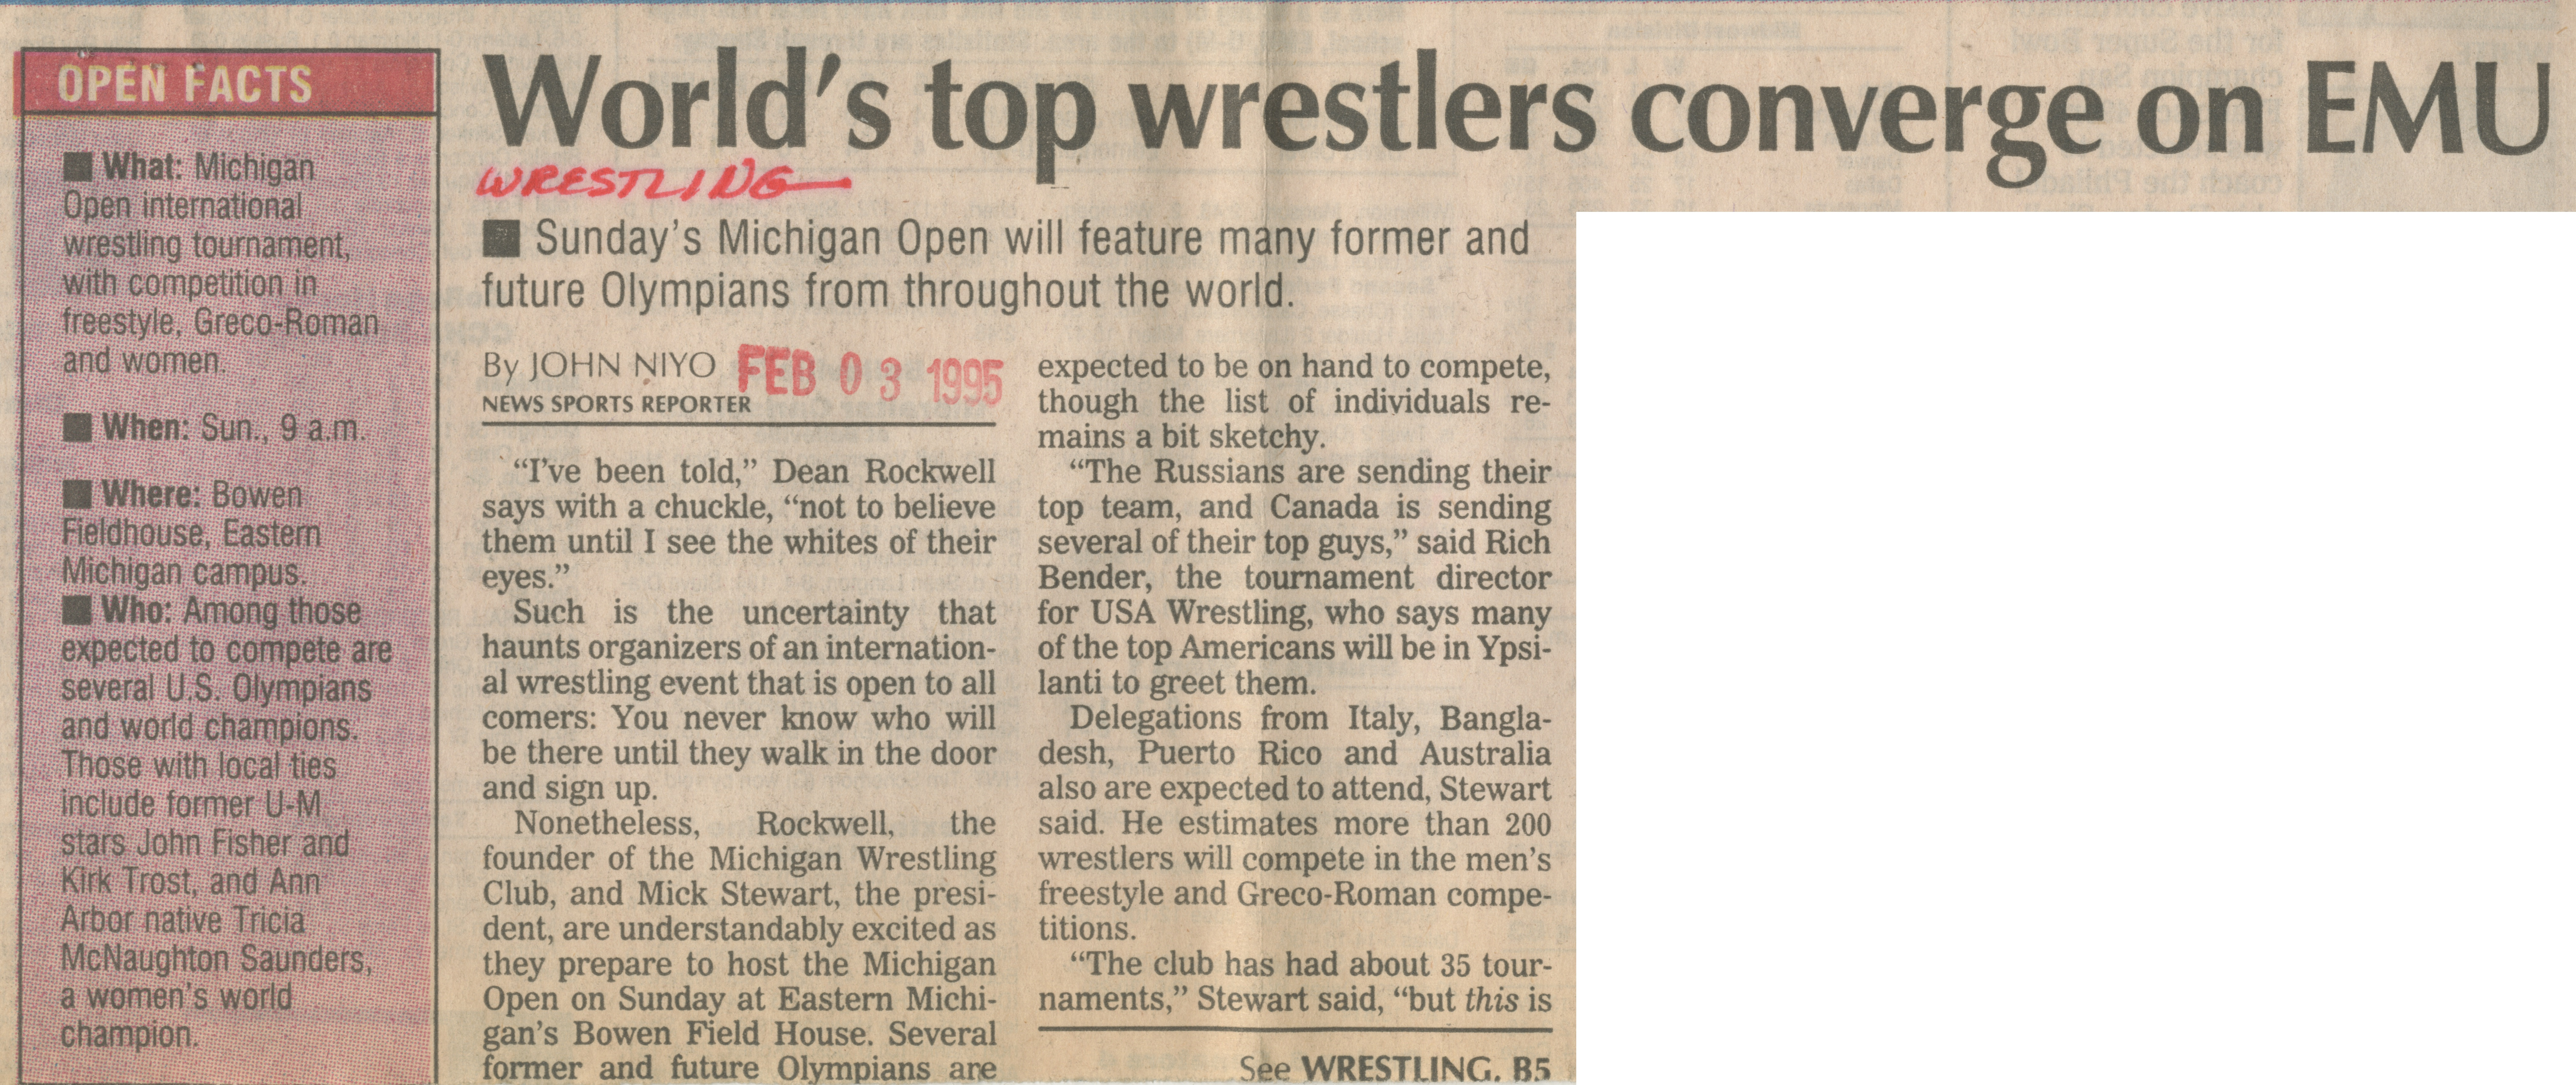 World's top wrestlers converge on EMU image